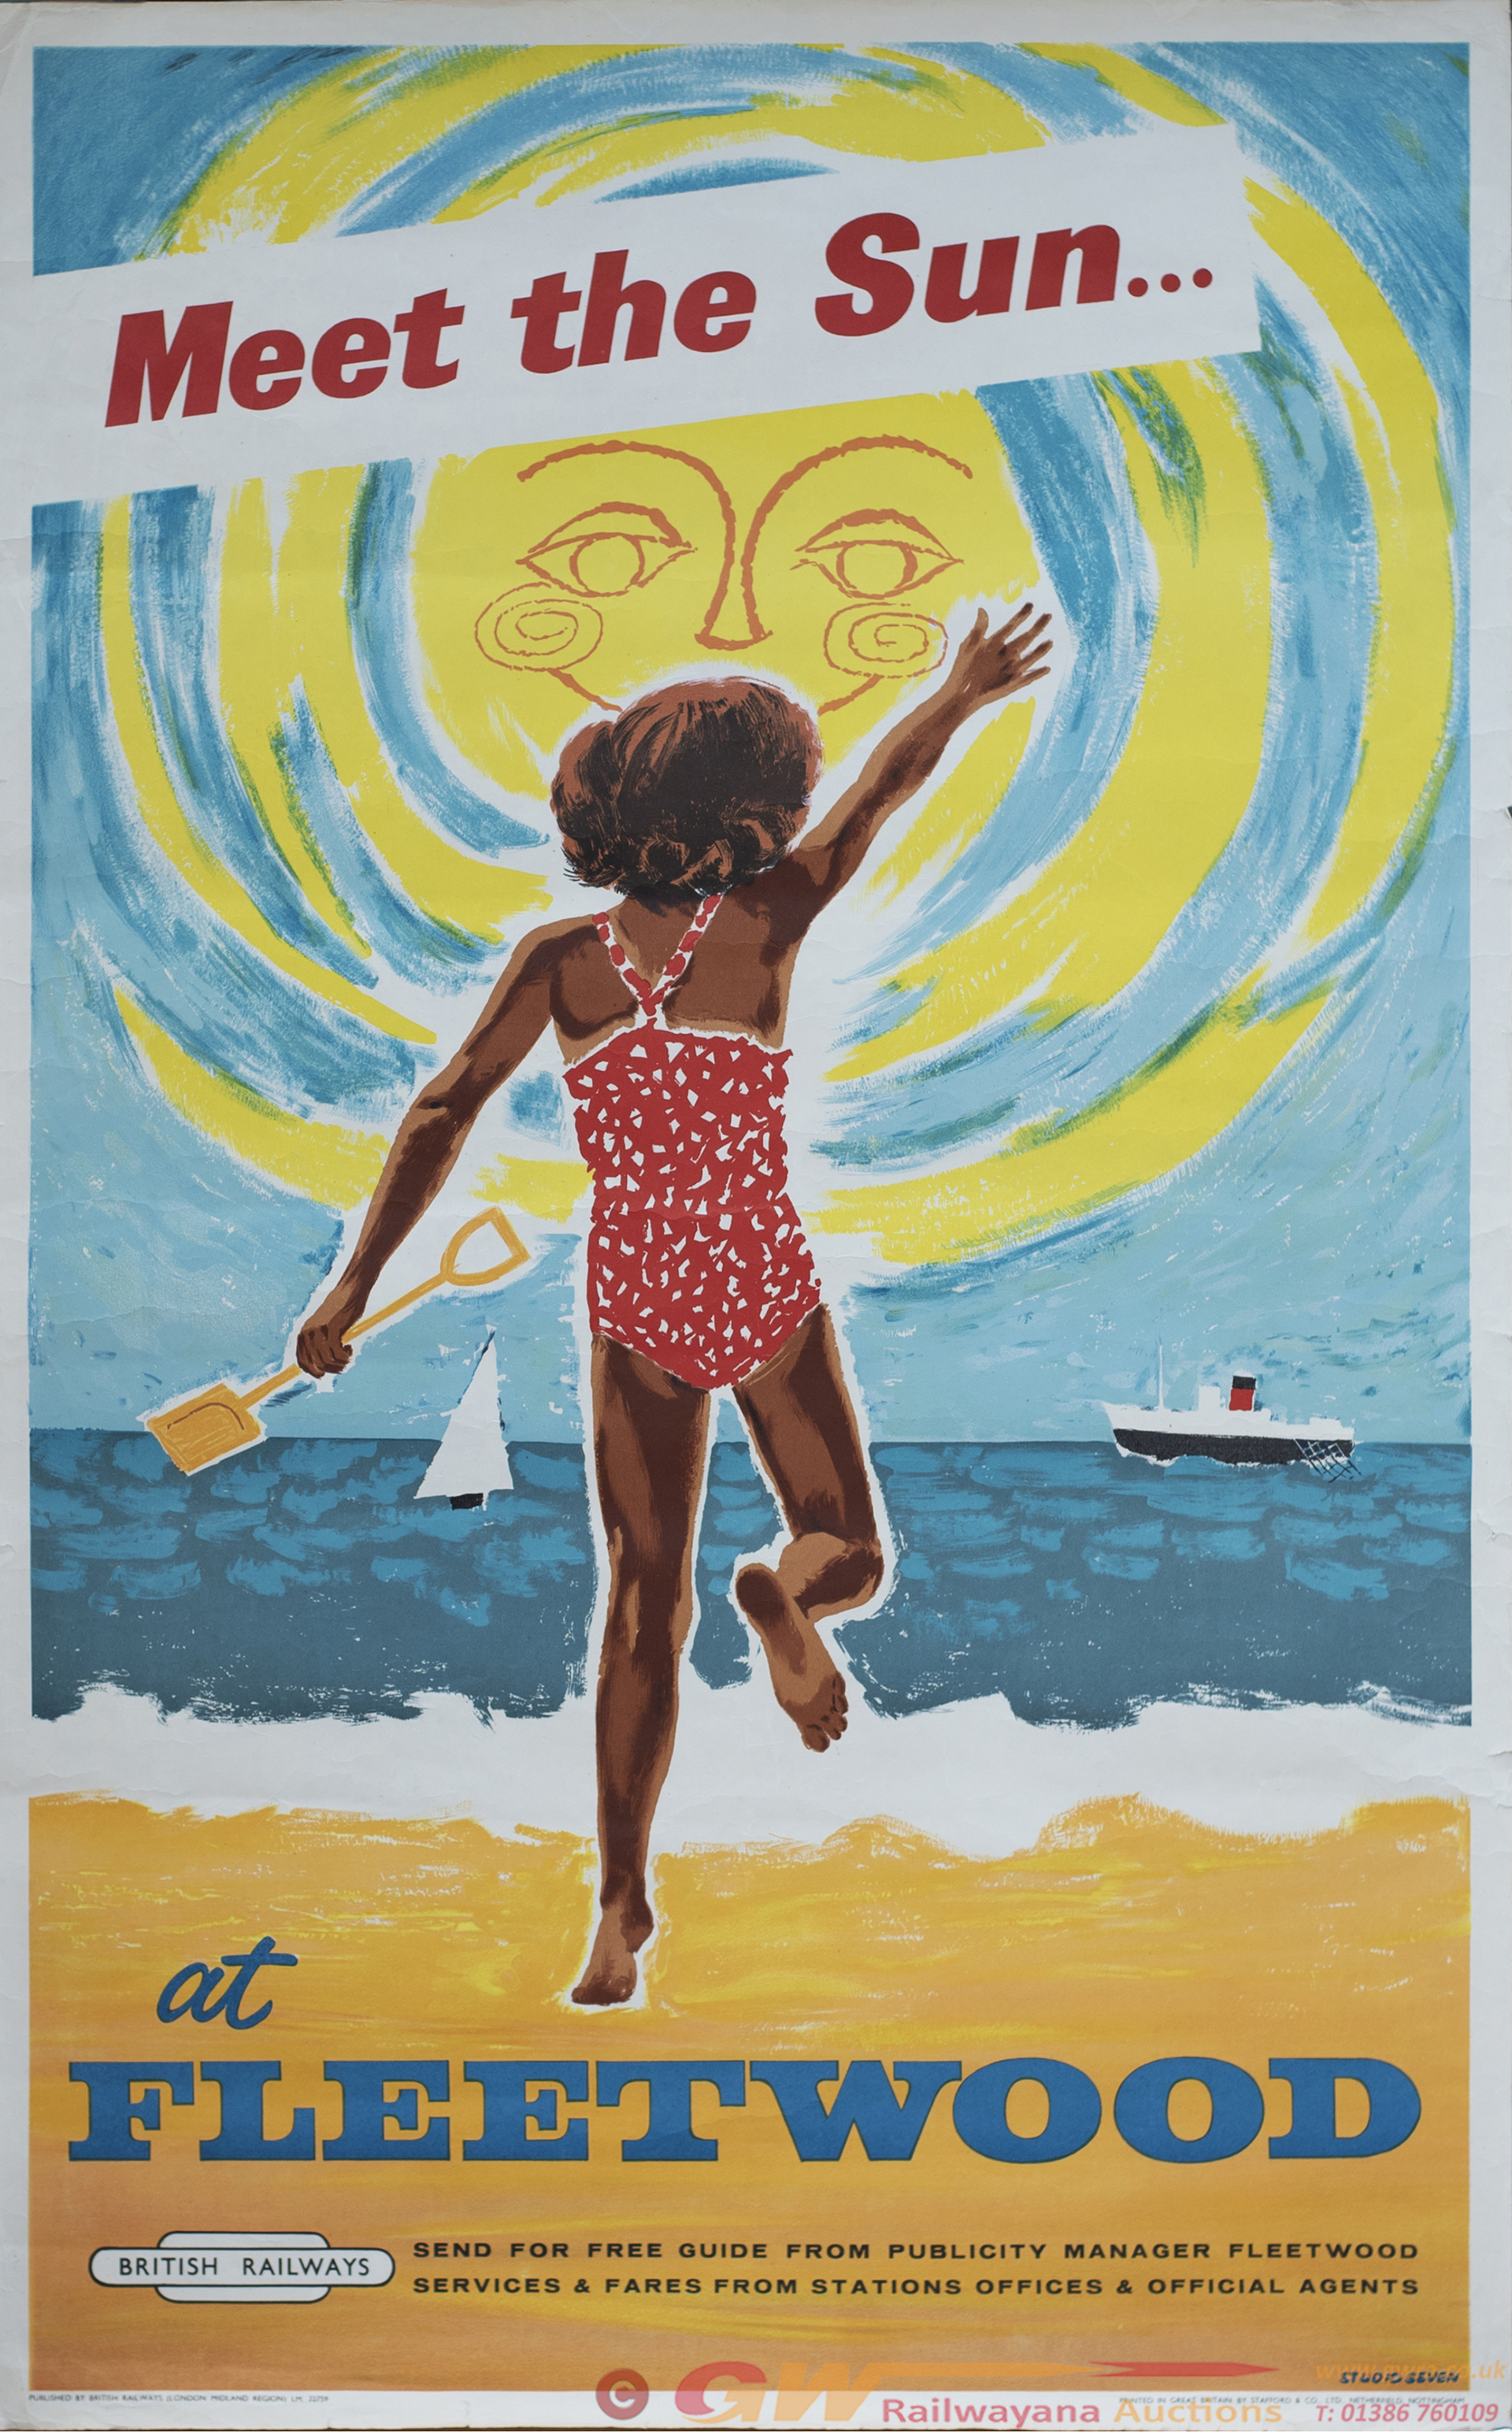 Poster BR(M) MEET THE SUN AT FLEETWOOD By Studio